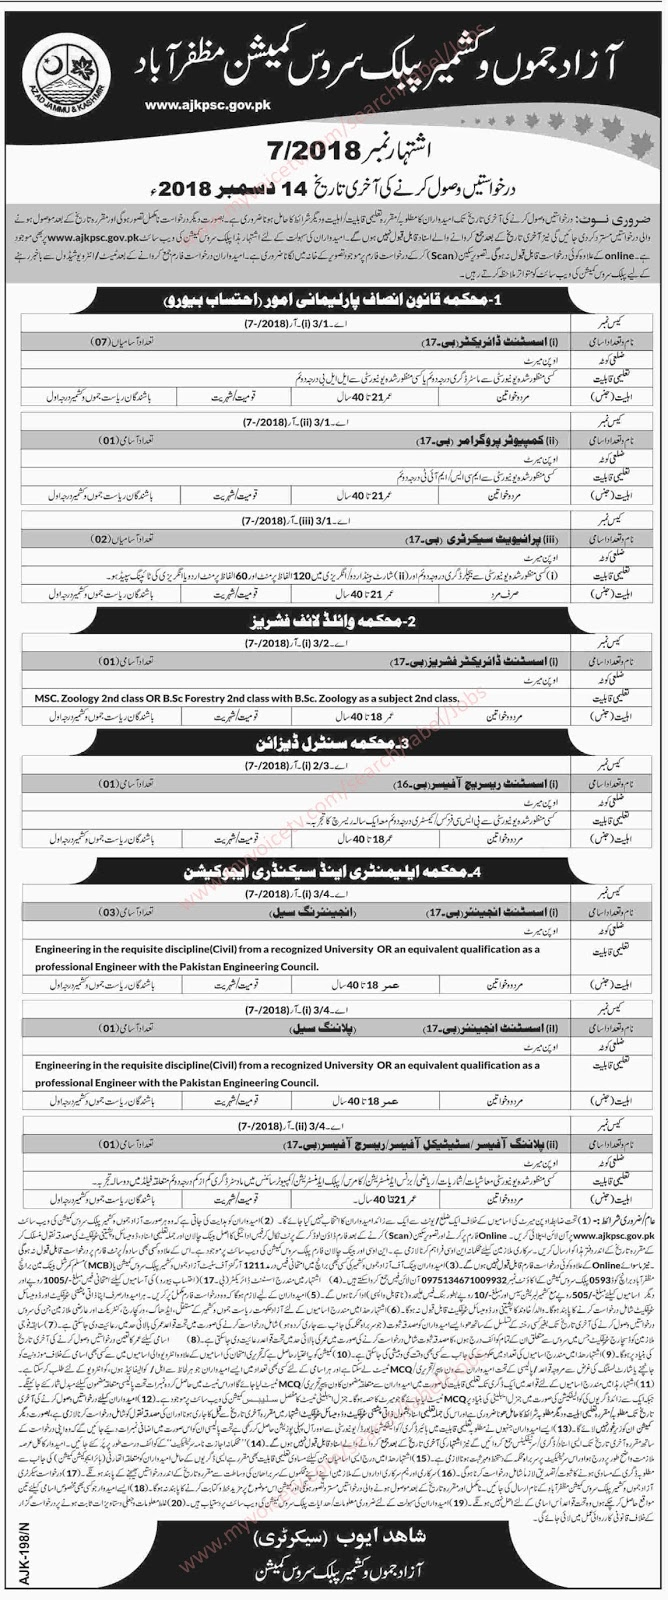 #Jobs - #Career_Opportunities - #Job - #Azad_Jammu_Kashmir Public Service Commission Jobs - 01 Dec 2018 Muzaffarabad – Last date for submission of application is 14th December 2018